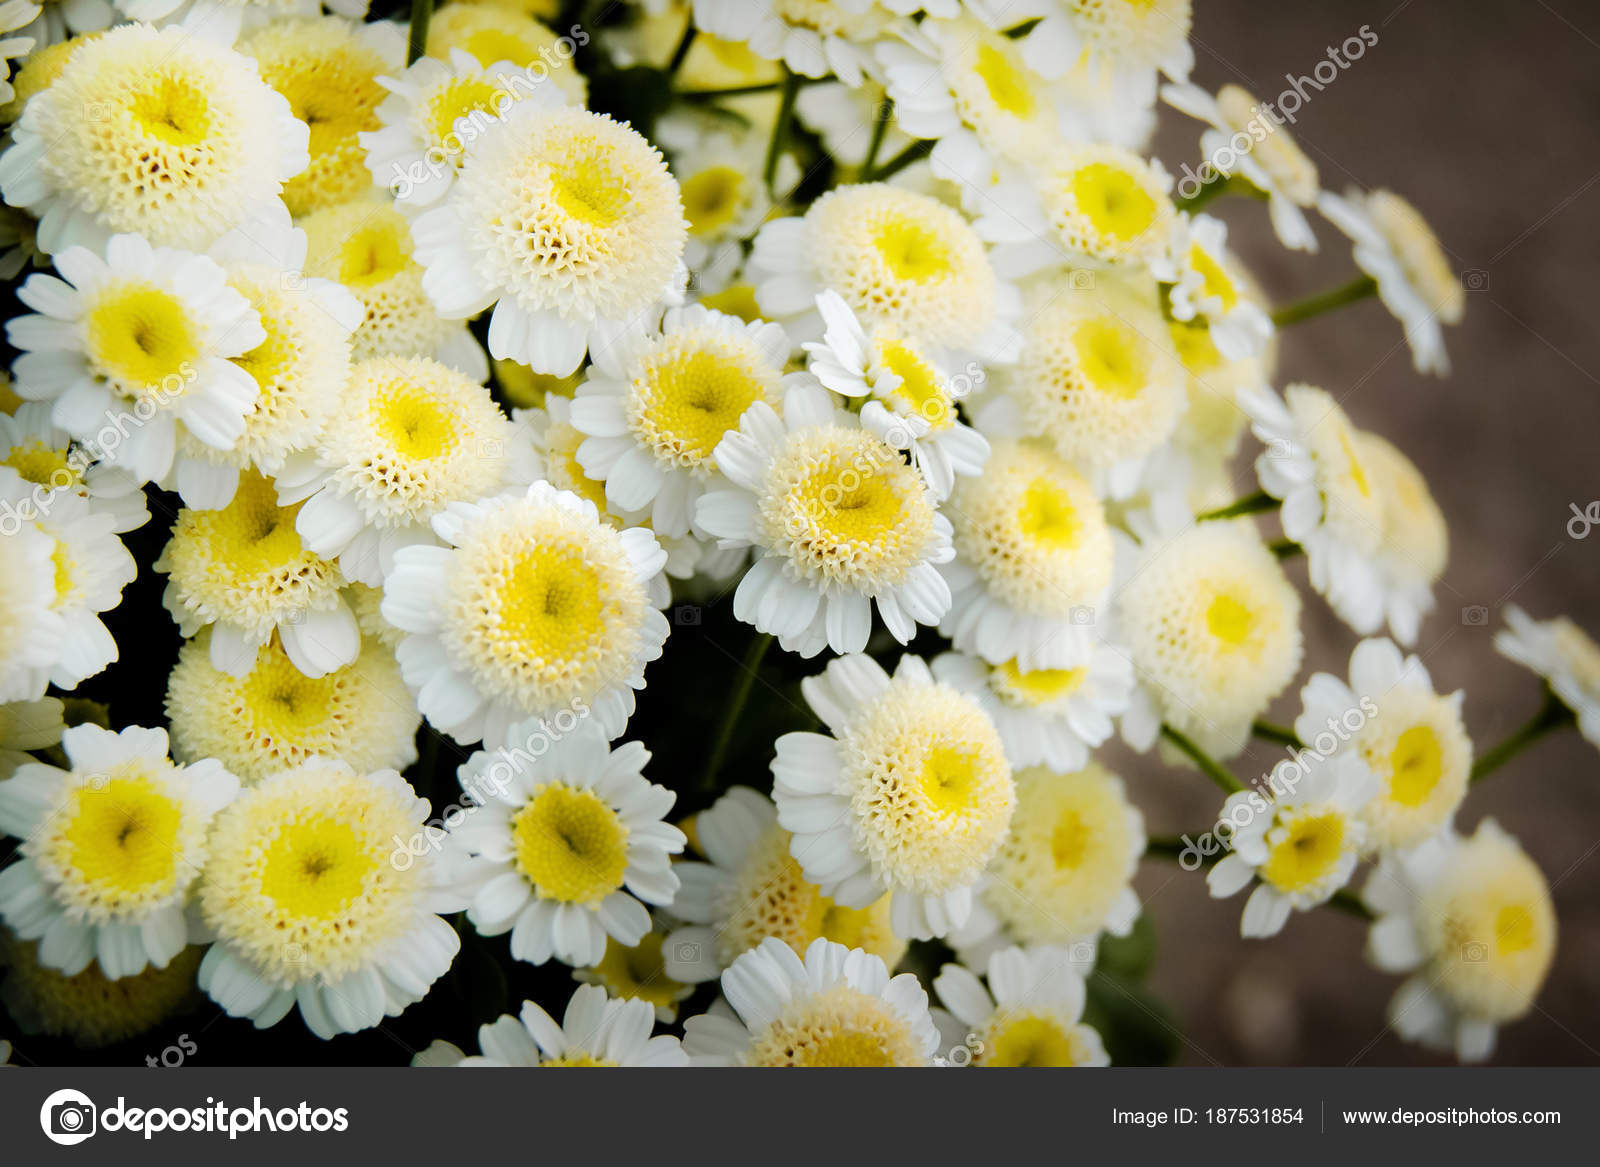 Bouquet of white daisies a white flower with a yellow center bouquet of white daisies a white flower with a yellow center birthday gift photo by mvolodymyr mightylinksfo